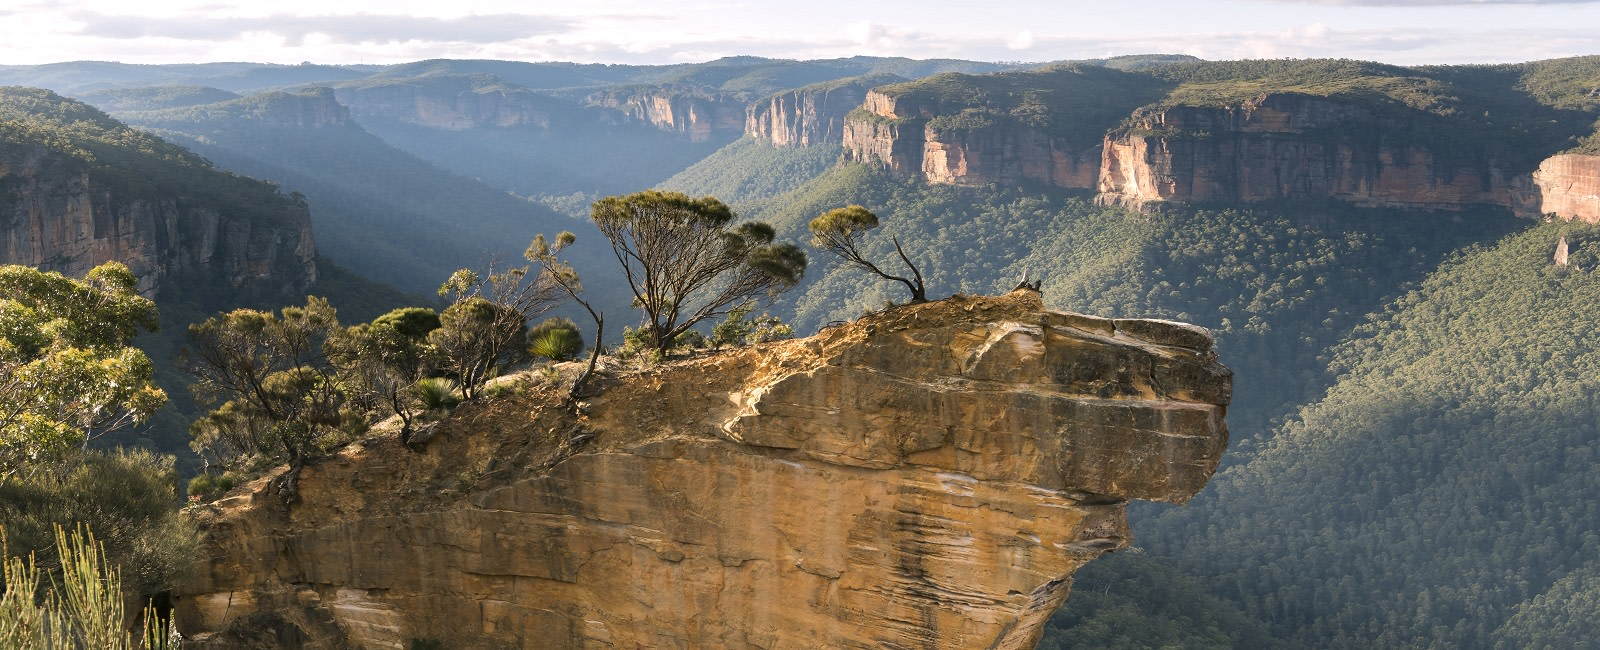 Hanging Rock Lookout, Blue Mountains, Australia